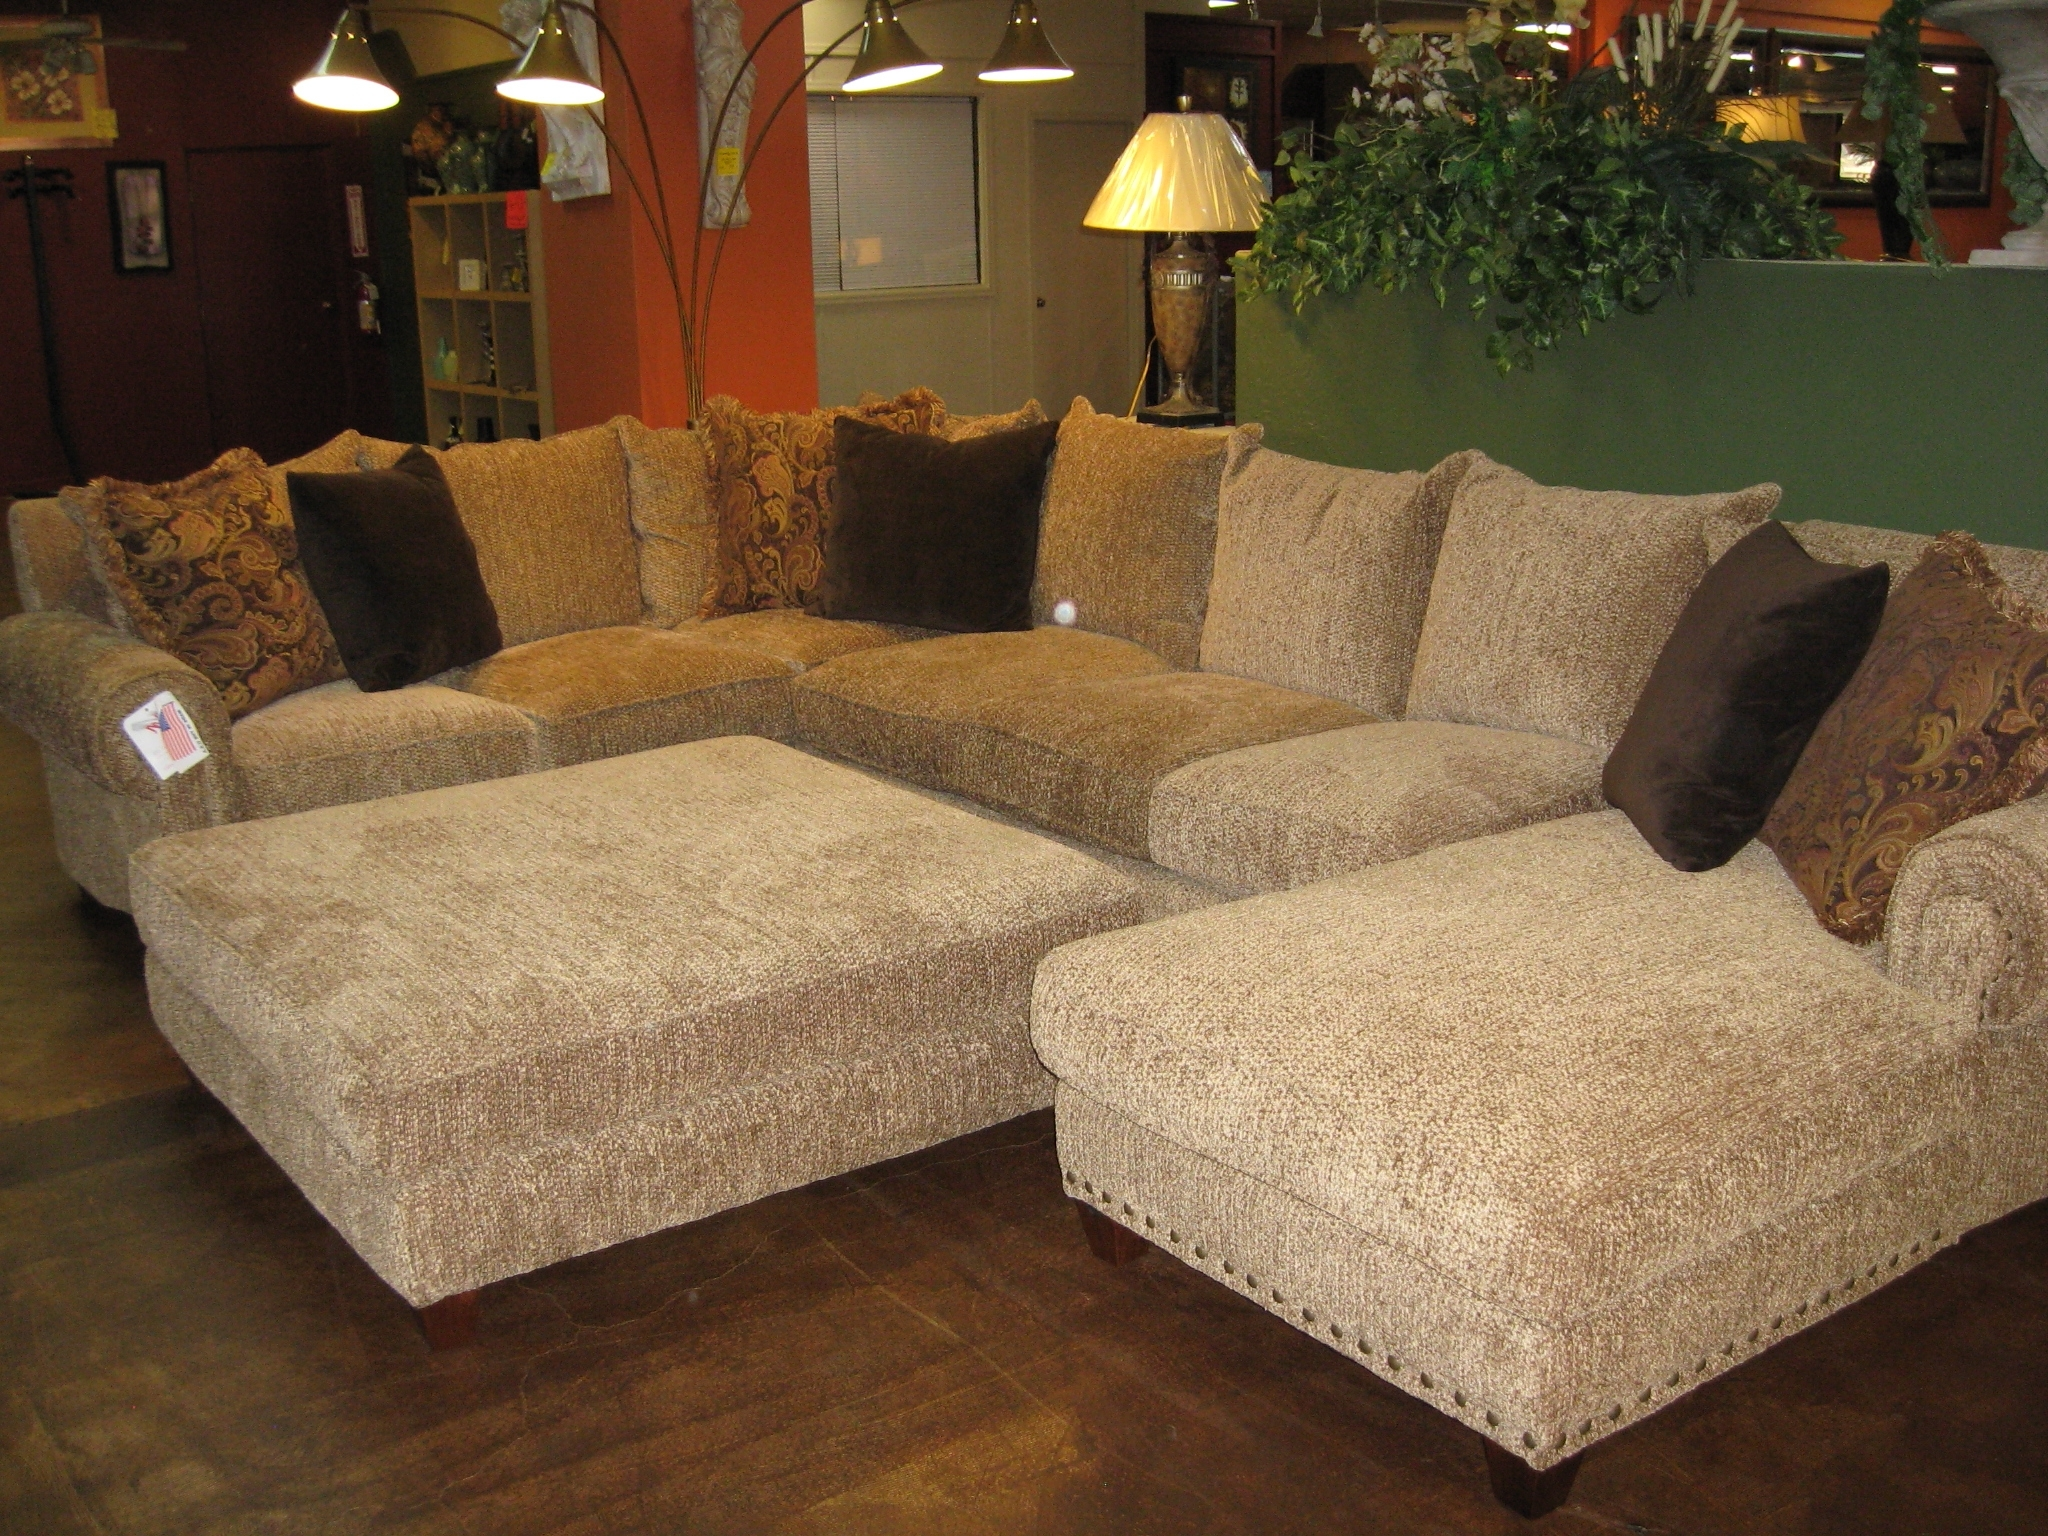 Long Sectional Sofas With Chaise Within Most Up To Date Living Room: John Michaels Large Butterscotch Laf Sectional Couch (View 16 of 20)